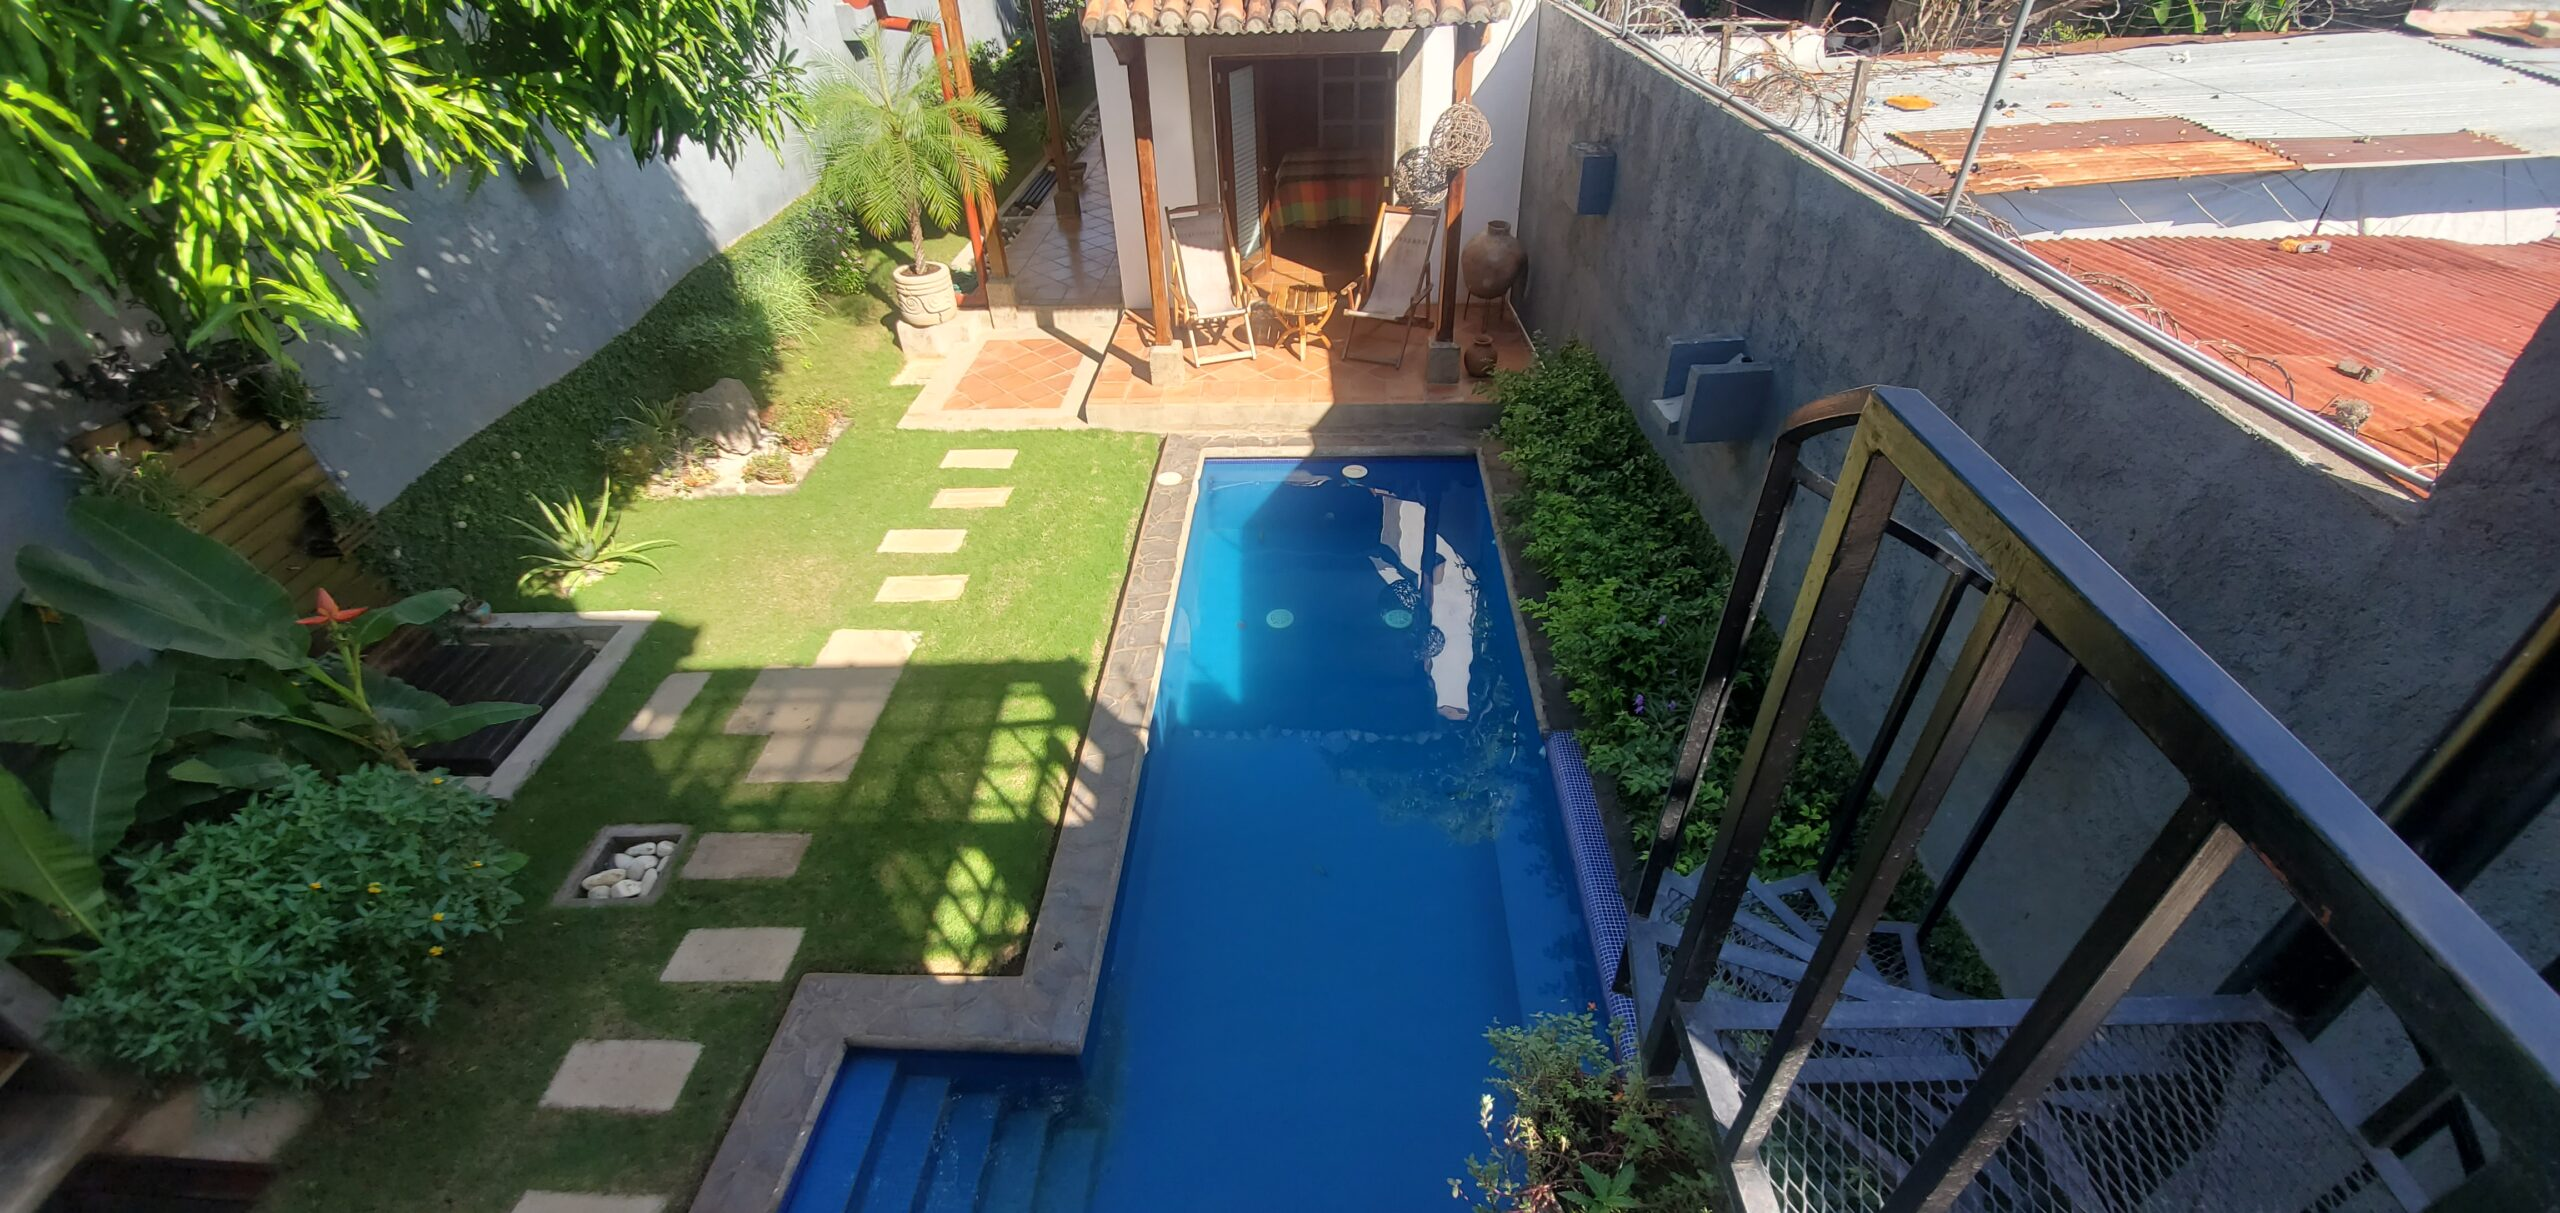 Top-notch build and maintained 3 Bedroom, 3 Bathroom Home, with pool, rooftop and much more in The Gran Sultana, Granada, Nicaragua